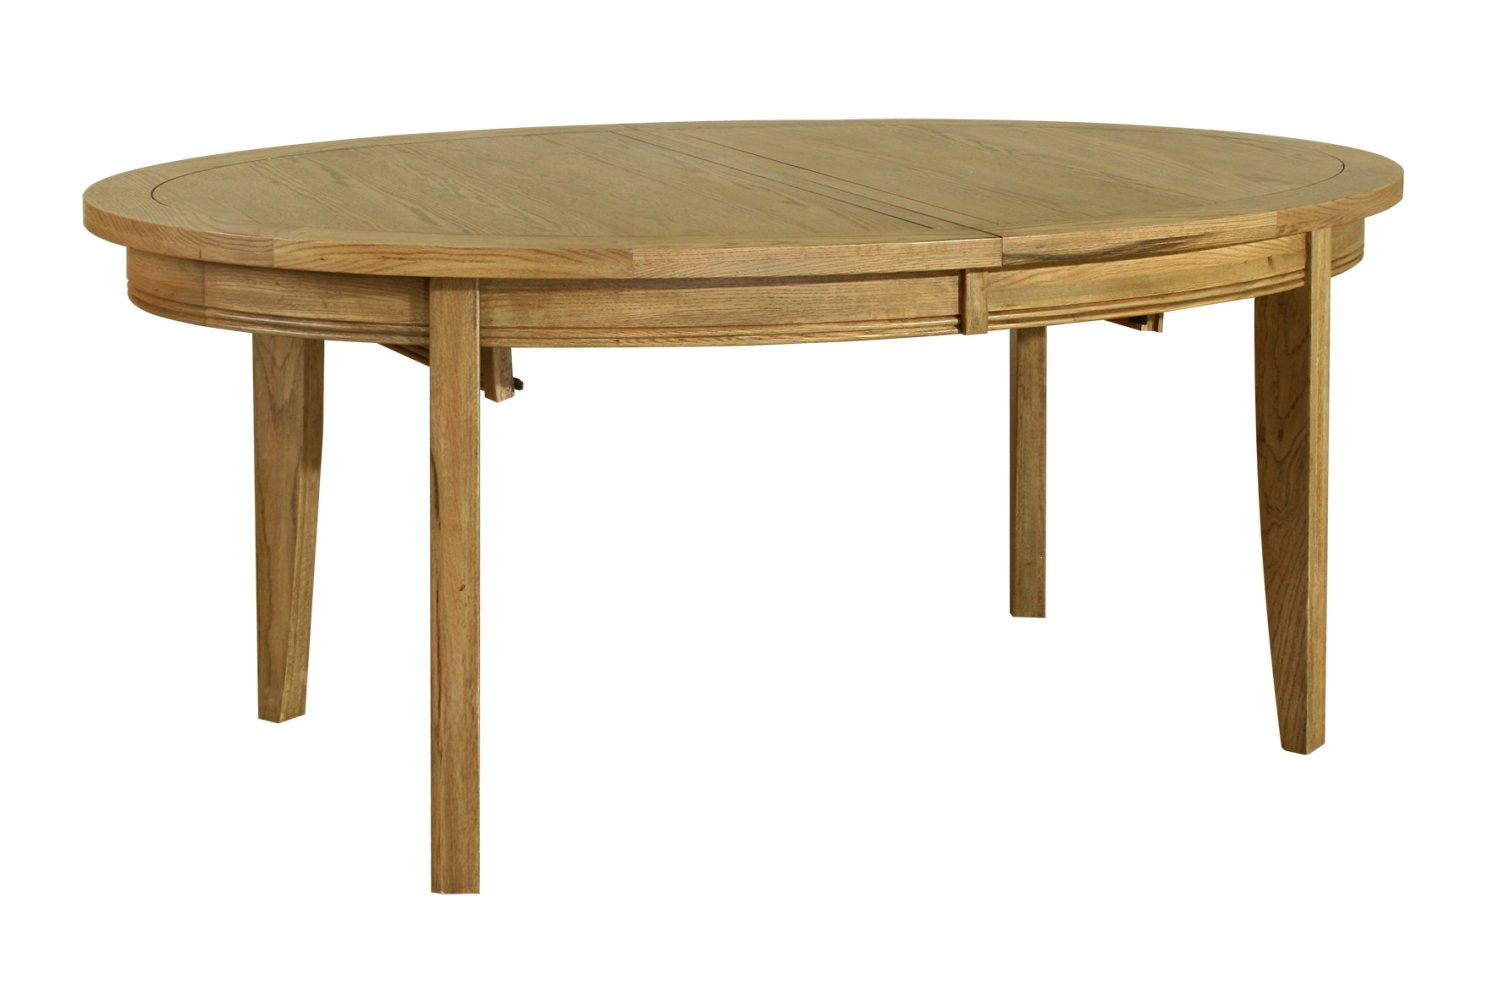 Linden solid oak dining room furniture oval extending dining table ebay - Extension tables dining room furniture ...